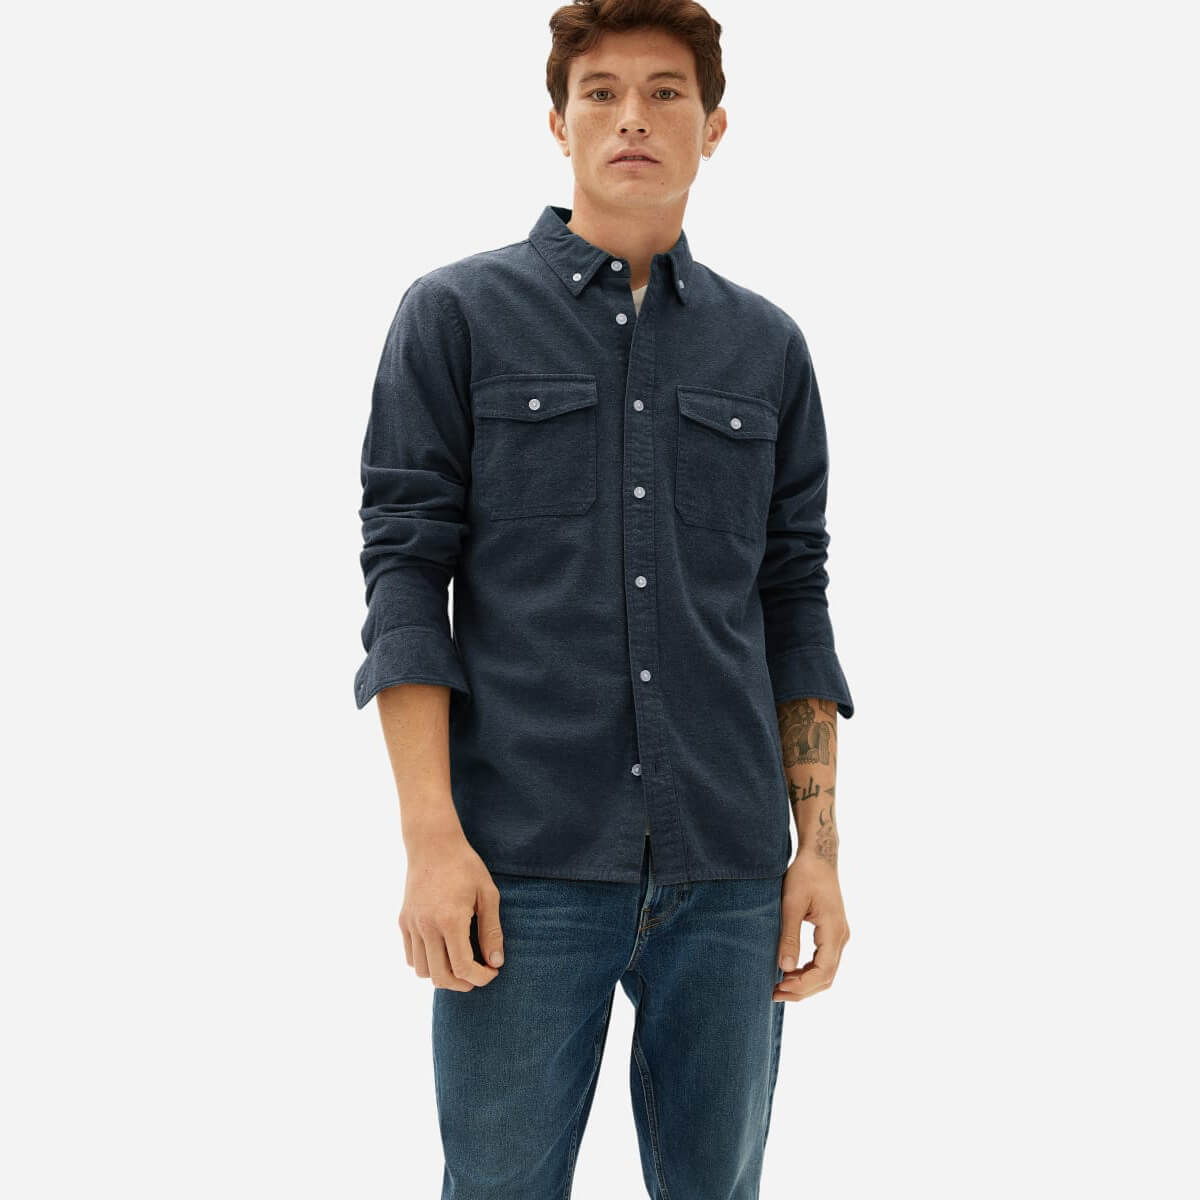 Everlane - The Brushed Flannel Shirt